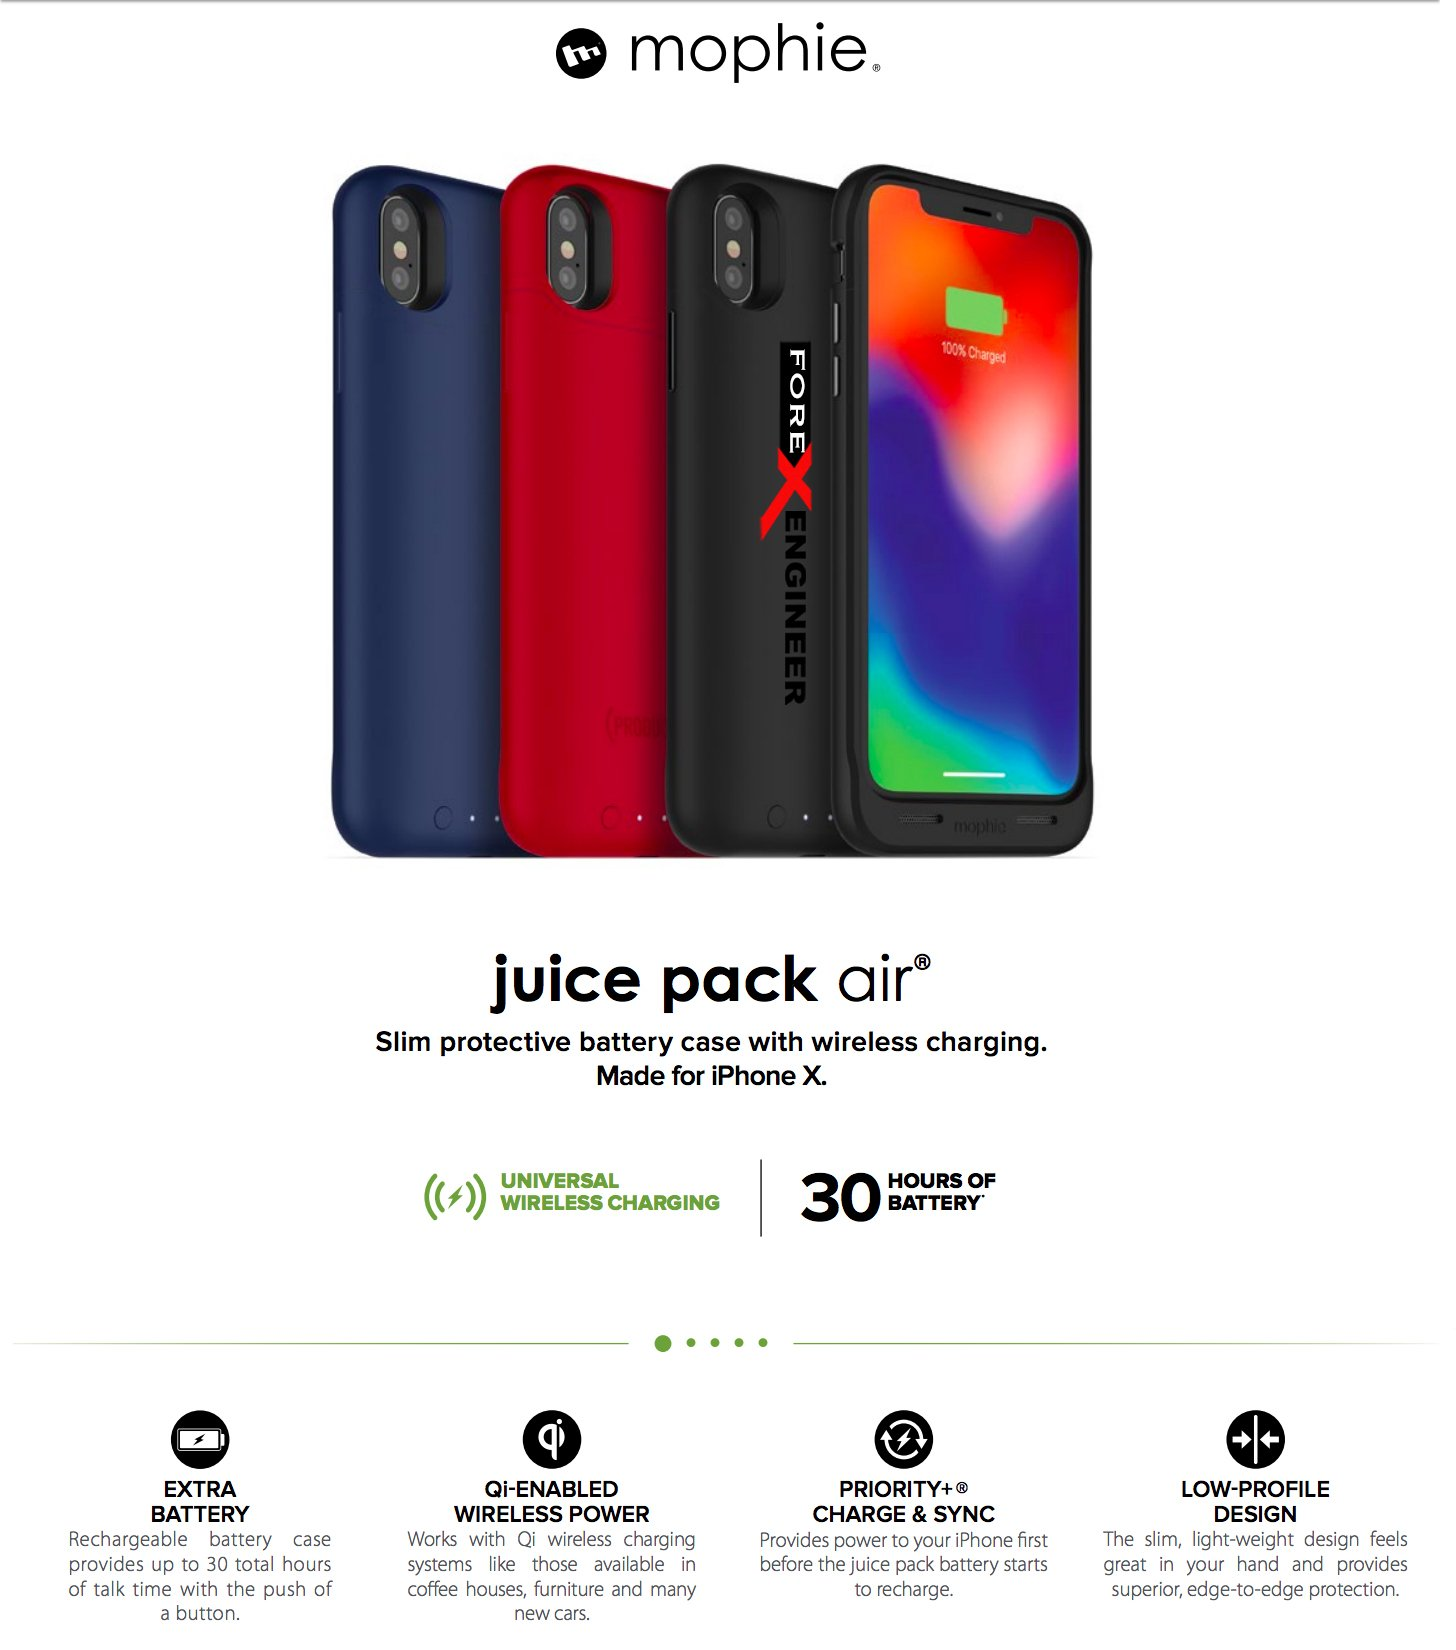 mophie-juice-pack-air-iPhone-X-black-red-blue-malaysia-forexengineer-store-authorised-mophie-retailer-partner-banner-1